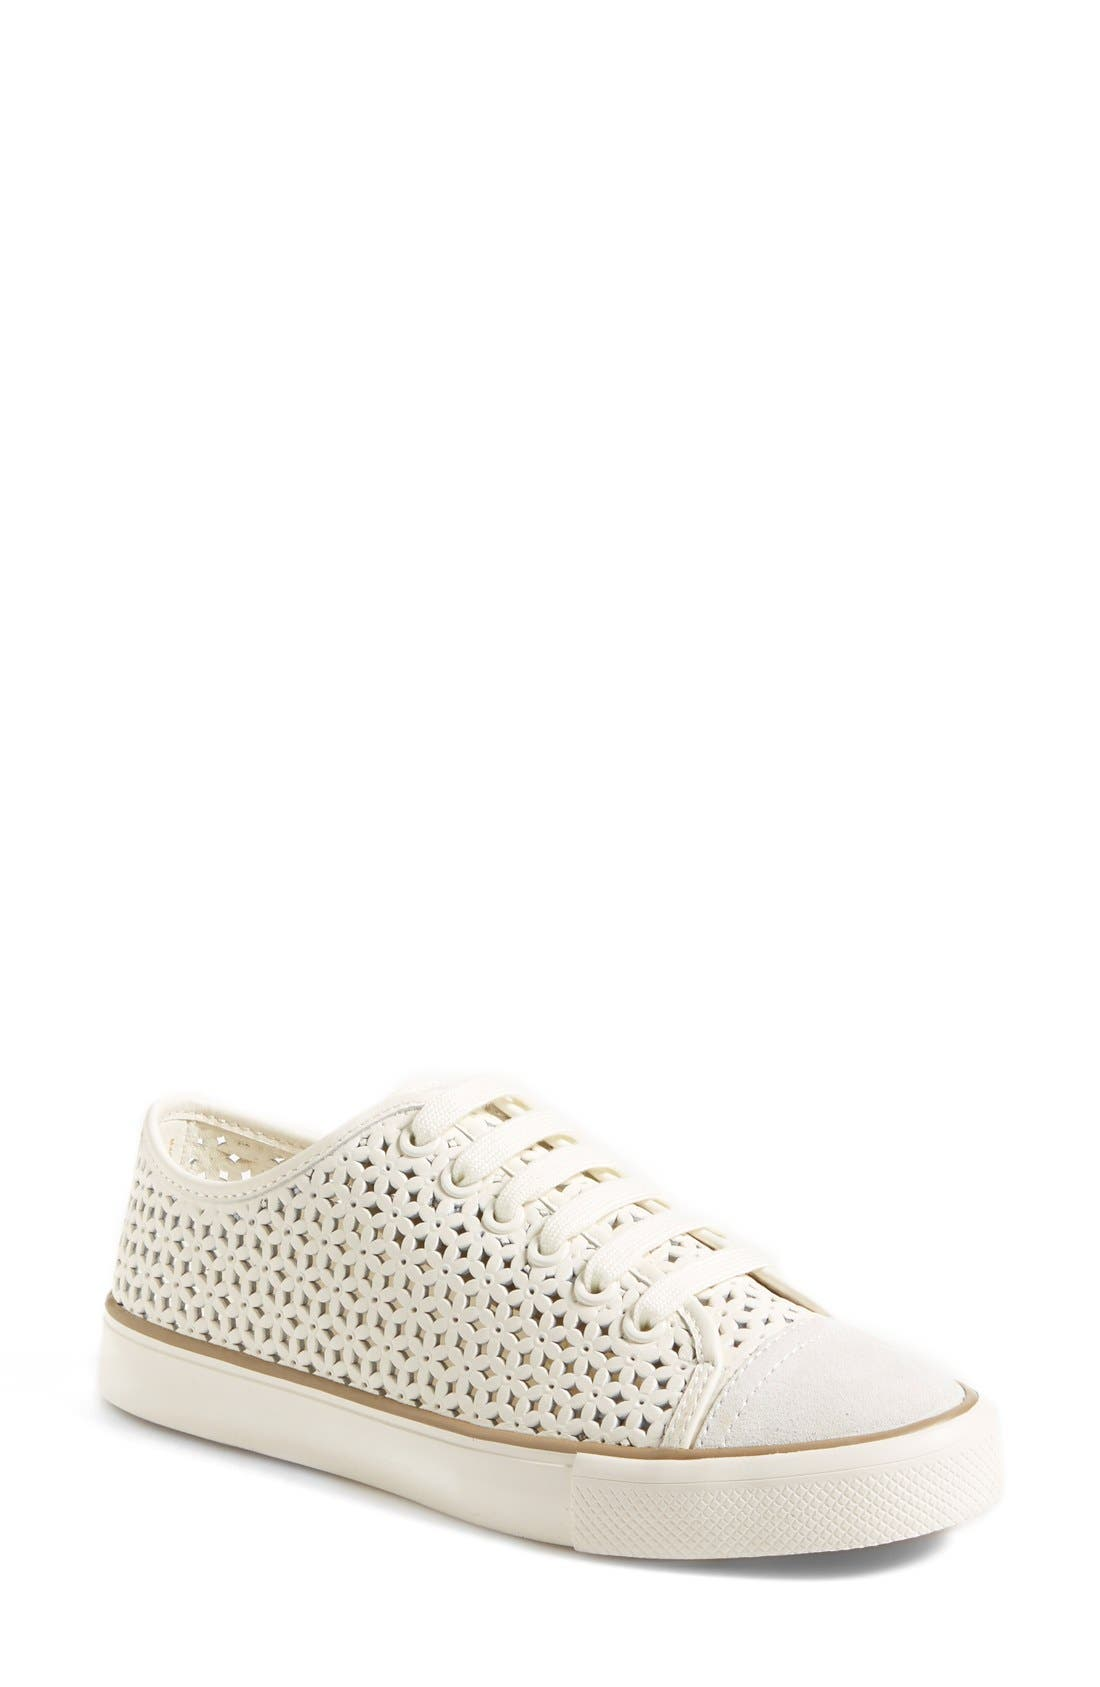 Alternate Image 1 Selected - Tory Burch 'Daisy' Perforated Sneaker (Women)